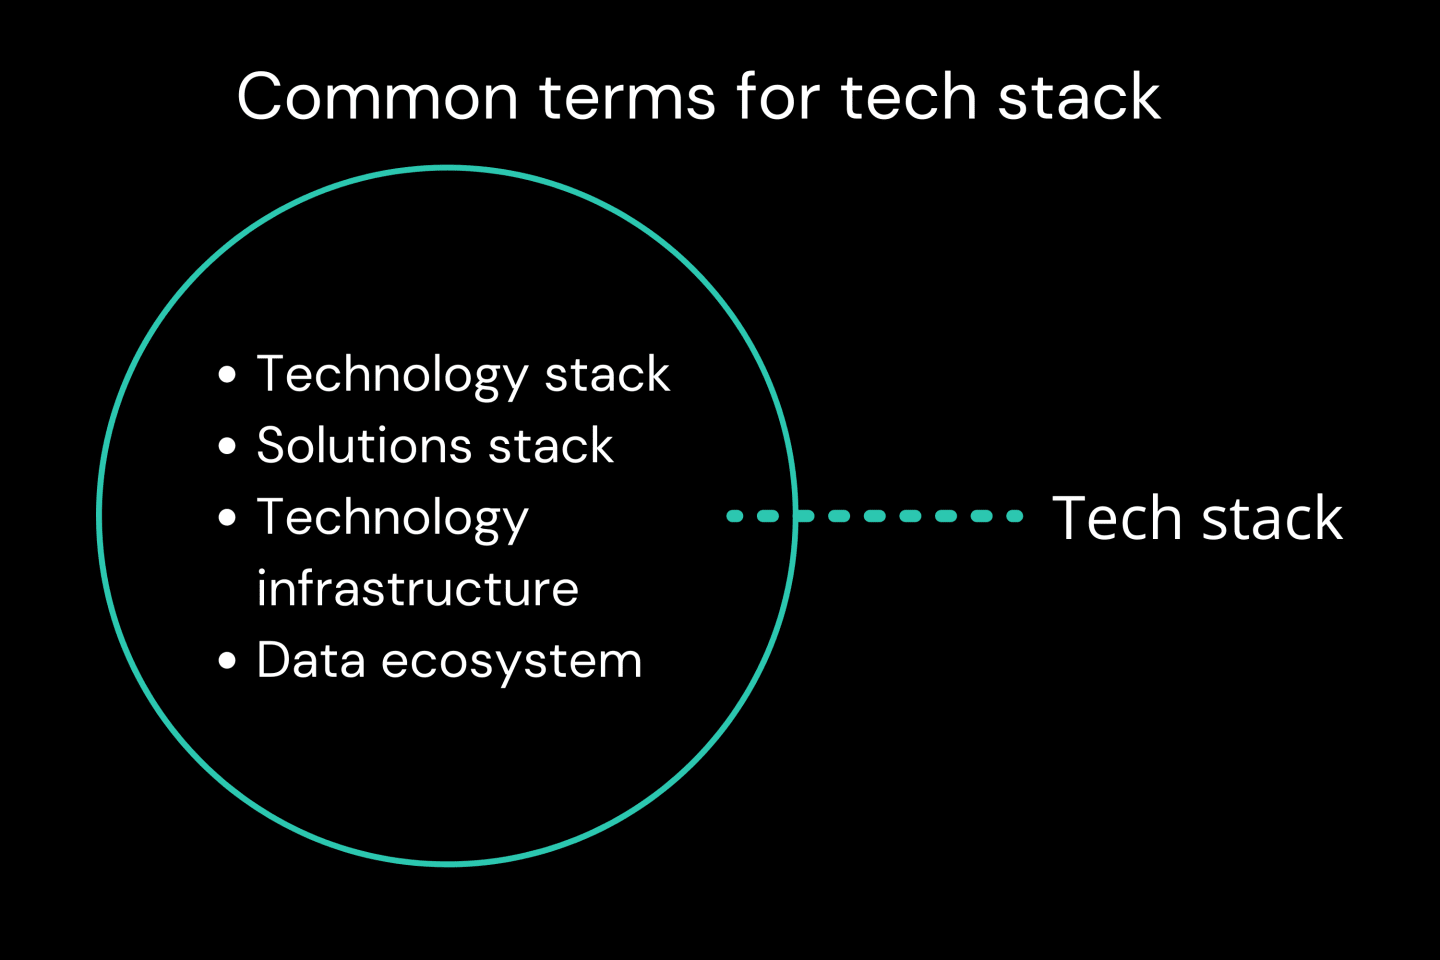 A list of common terms for 'tech stack.' The list includes, 'technology stack', 'solutions stack', 'technology infrastructure,' and 'data ecosystem.'